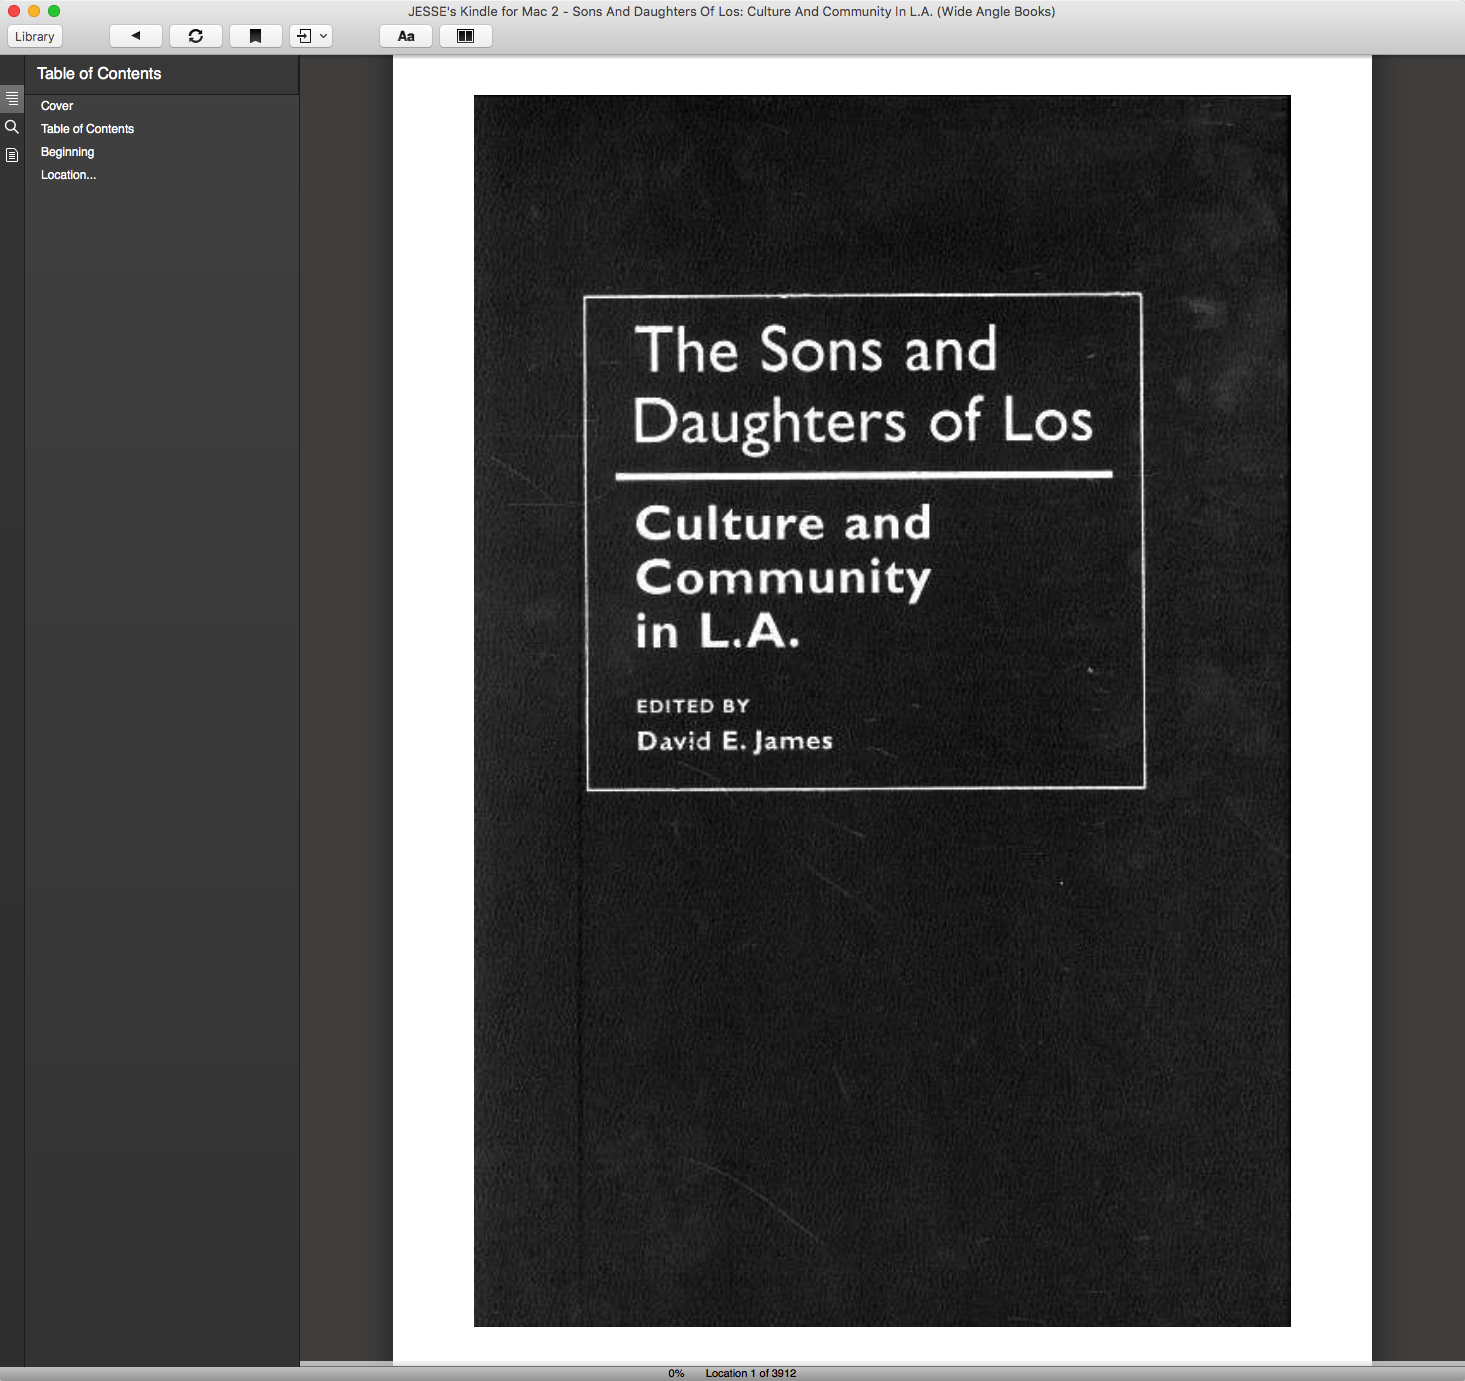 The Sons and Daughters of Los - Culture and Community in L.A. - Cover.png